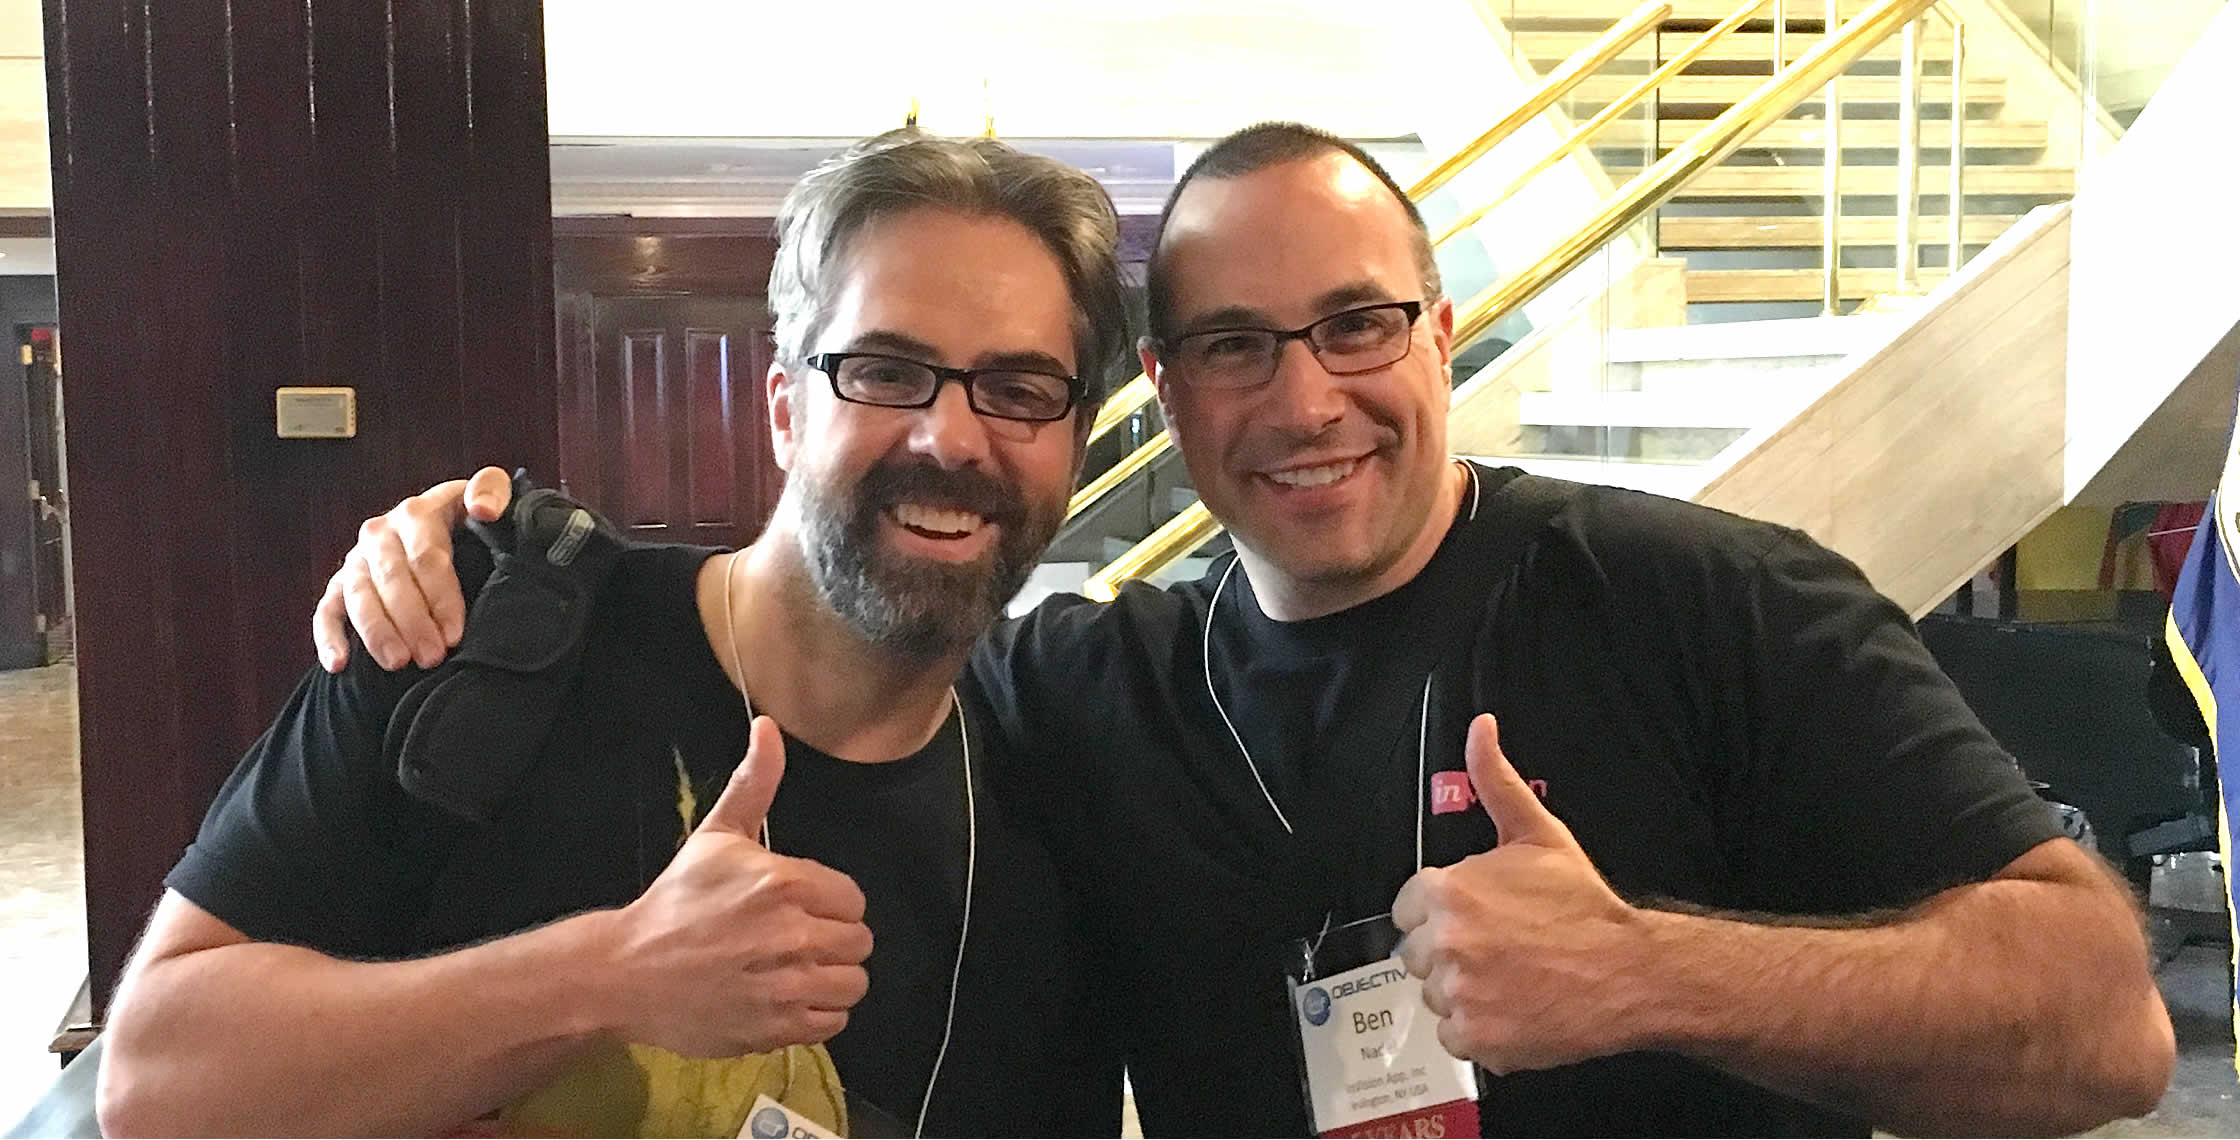 Ben Nadel at cf.Objective() 2017 (Washington, D.C.) with: David Colvin